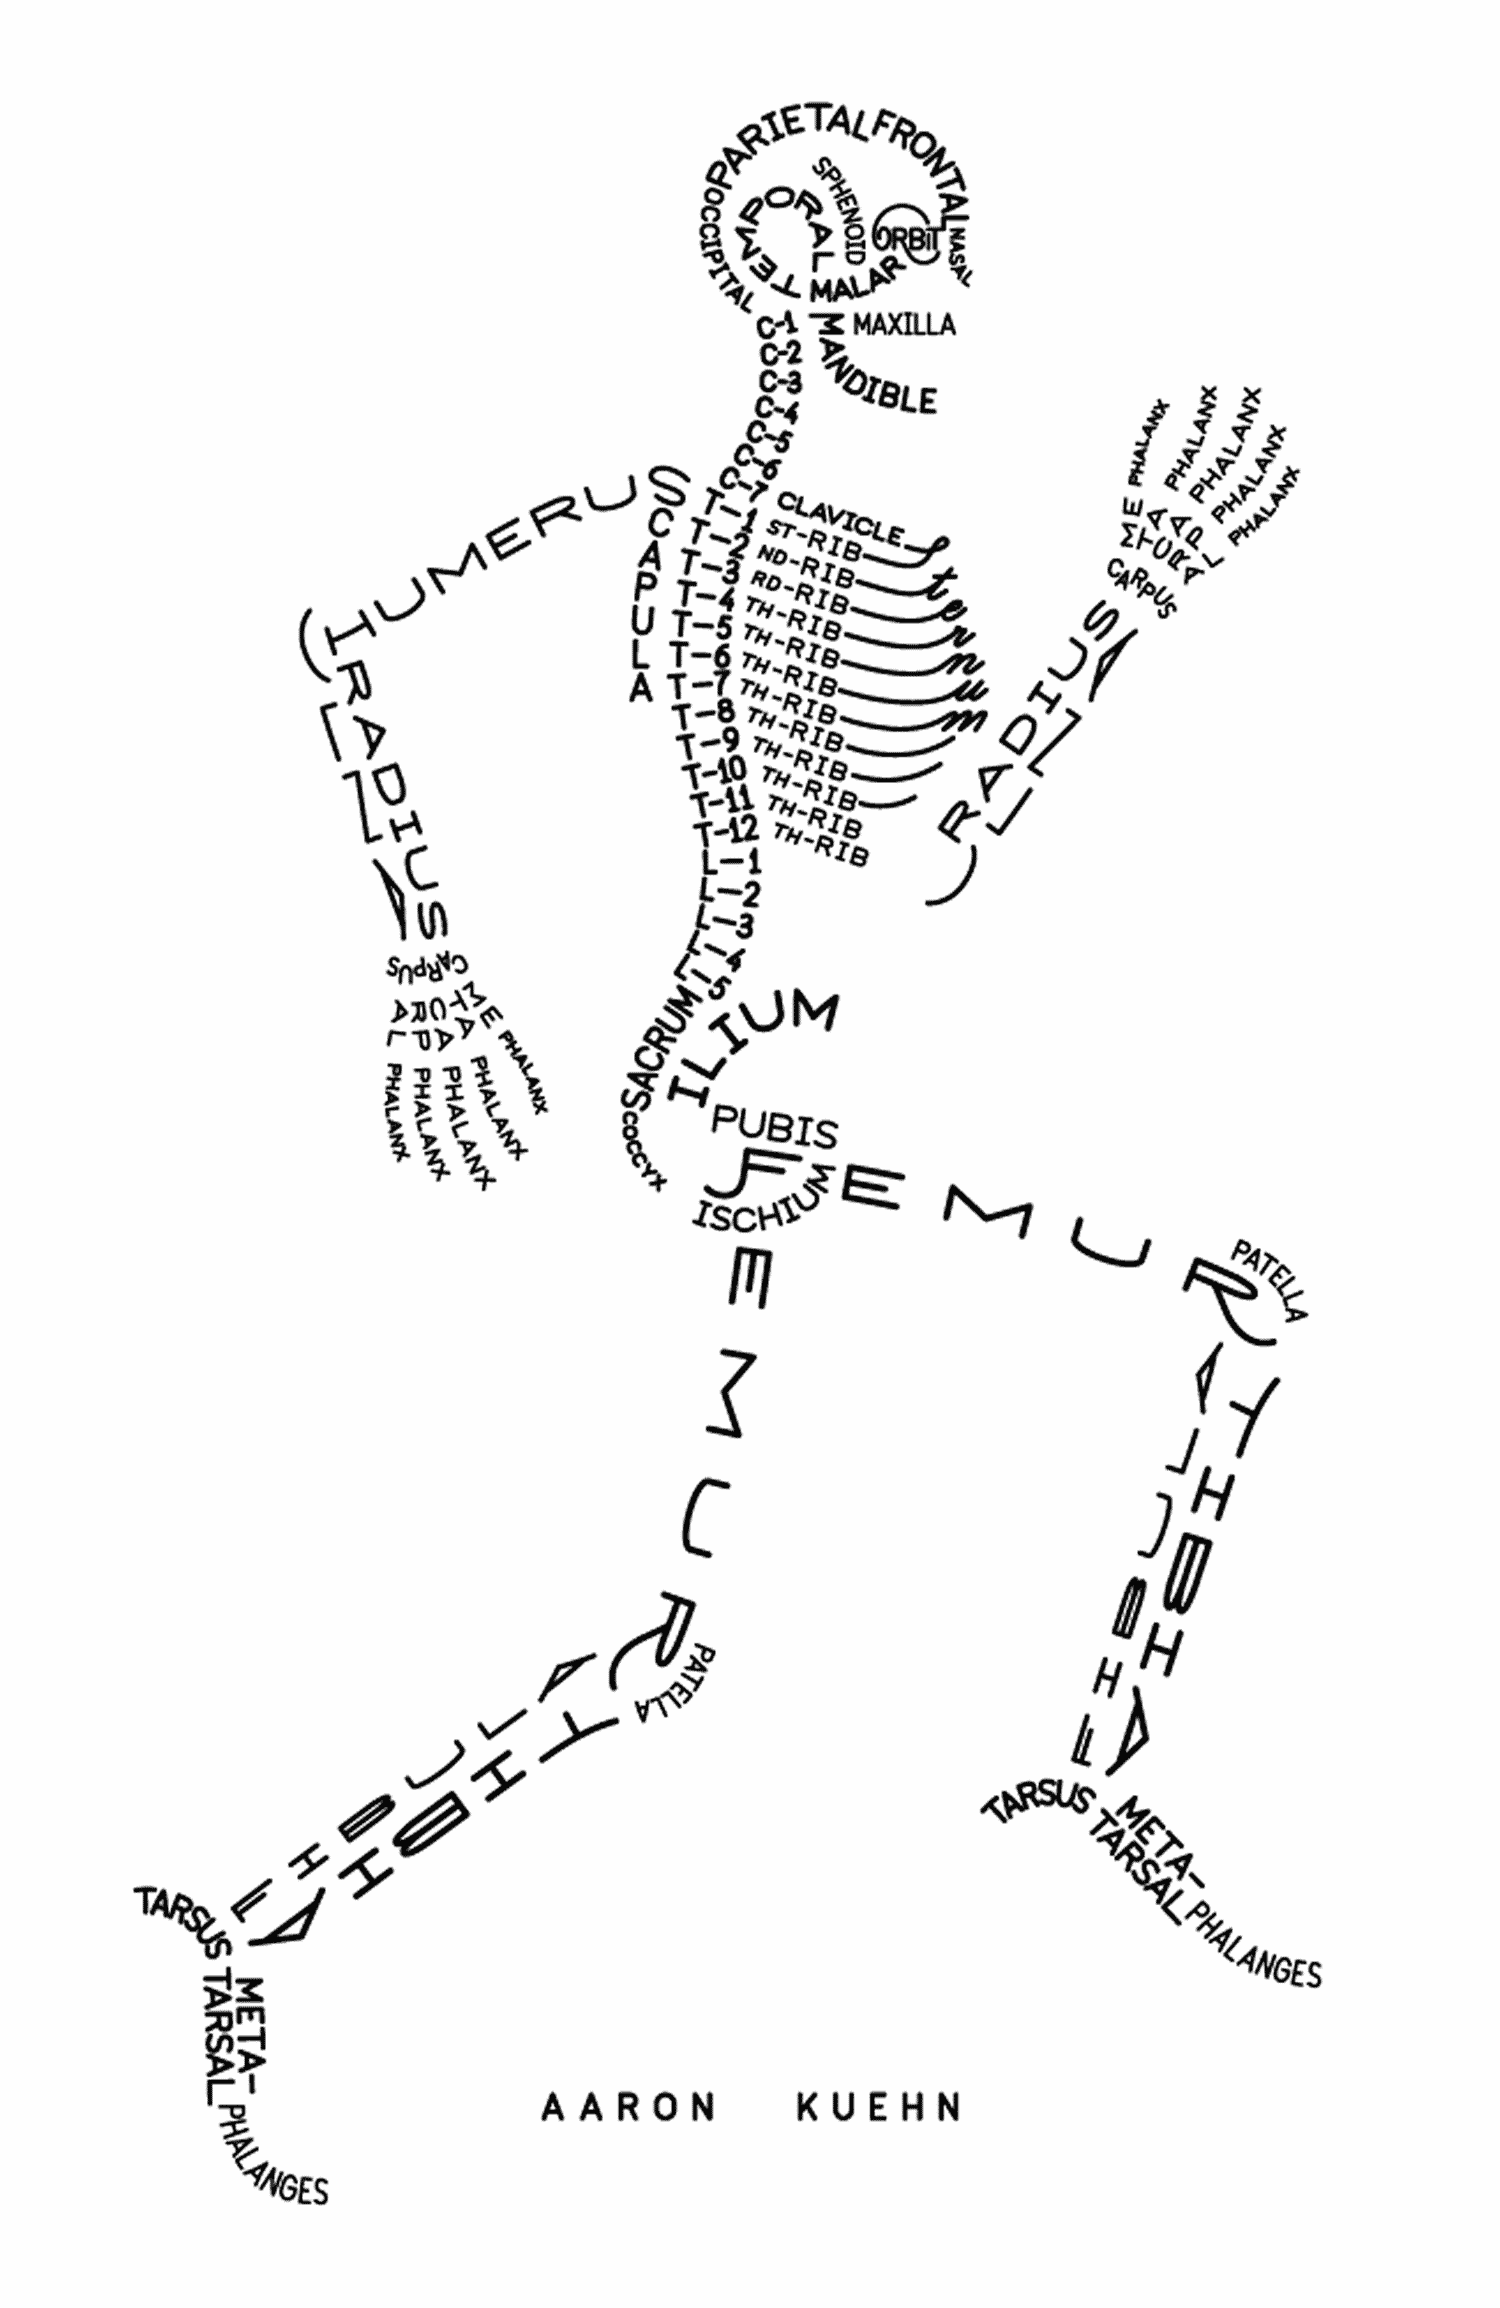 Fun skeleton diagram the daily ease cartoons daily ease diagrams fun skeleton diagram fun skull diagram pooptronica Image collections